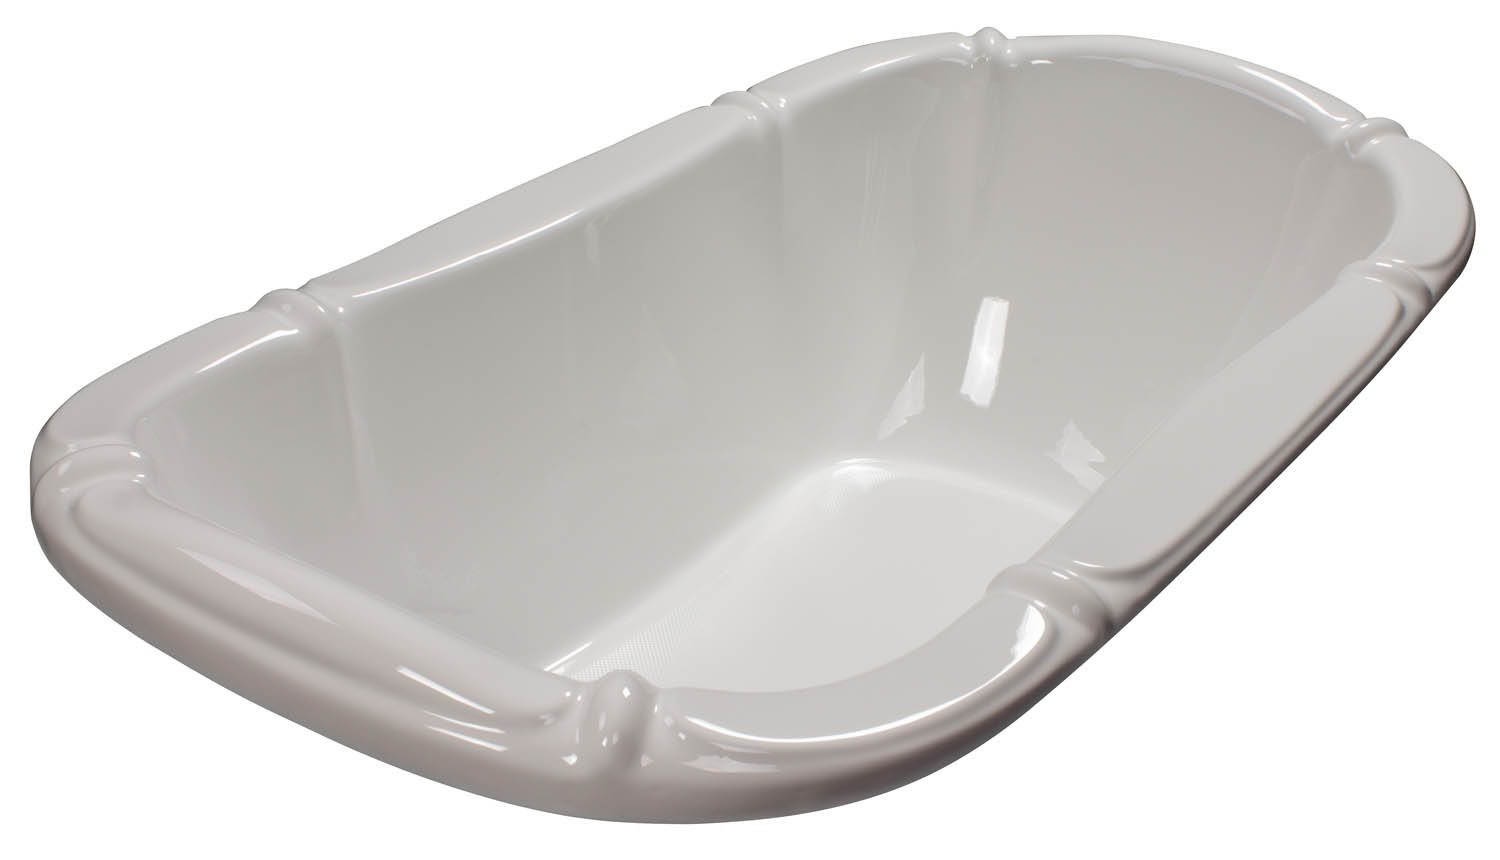 39u2033 X 69u2033 Rectangular Bathtub BR 17